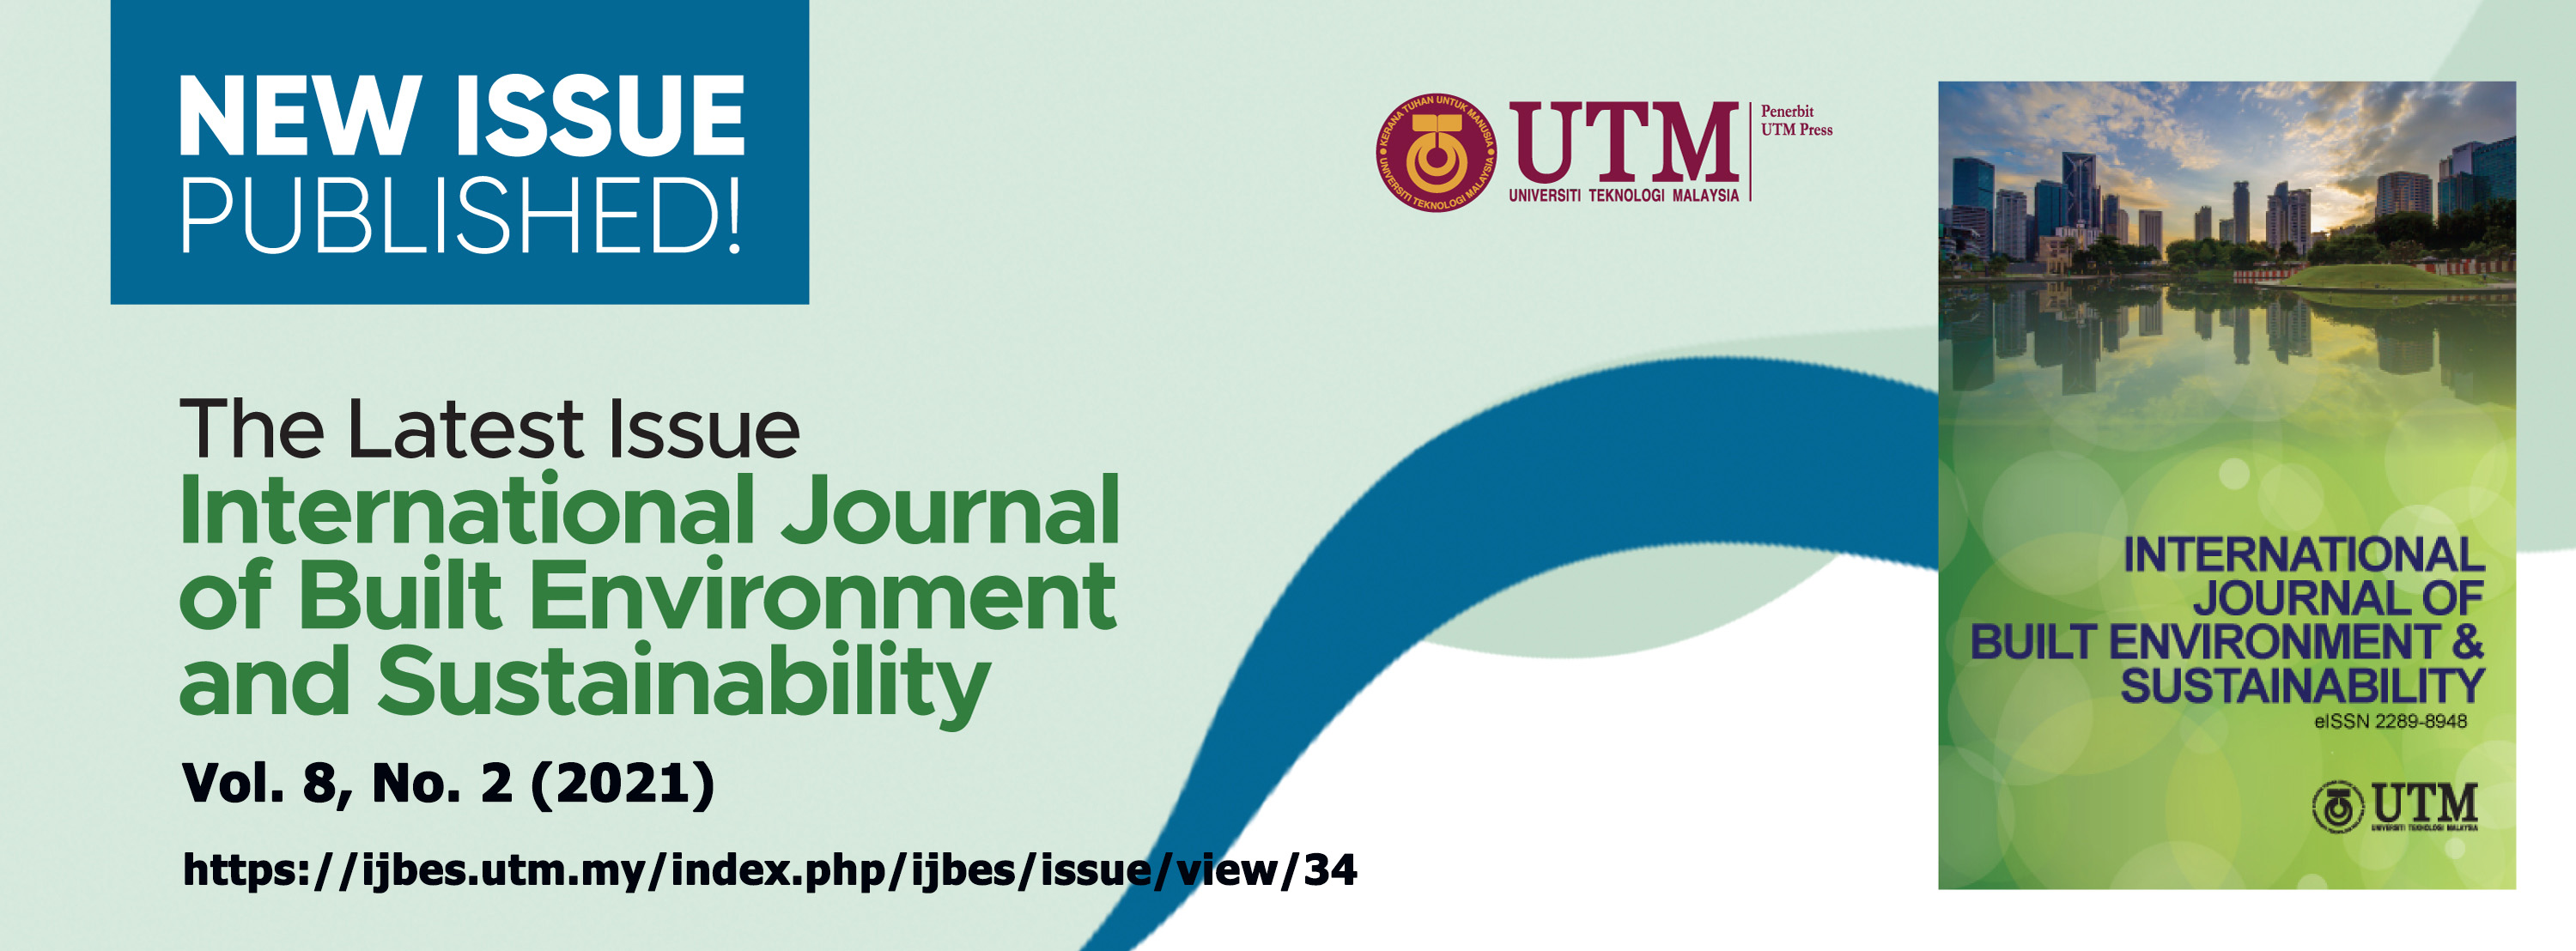 View Vol. 8 No. 2 (2021): International Journal of Built Environment and Sustainability, Volume 8, Issue 2, 2021